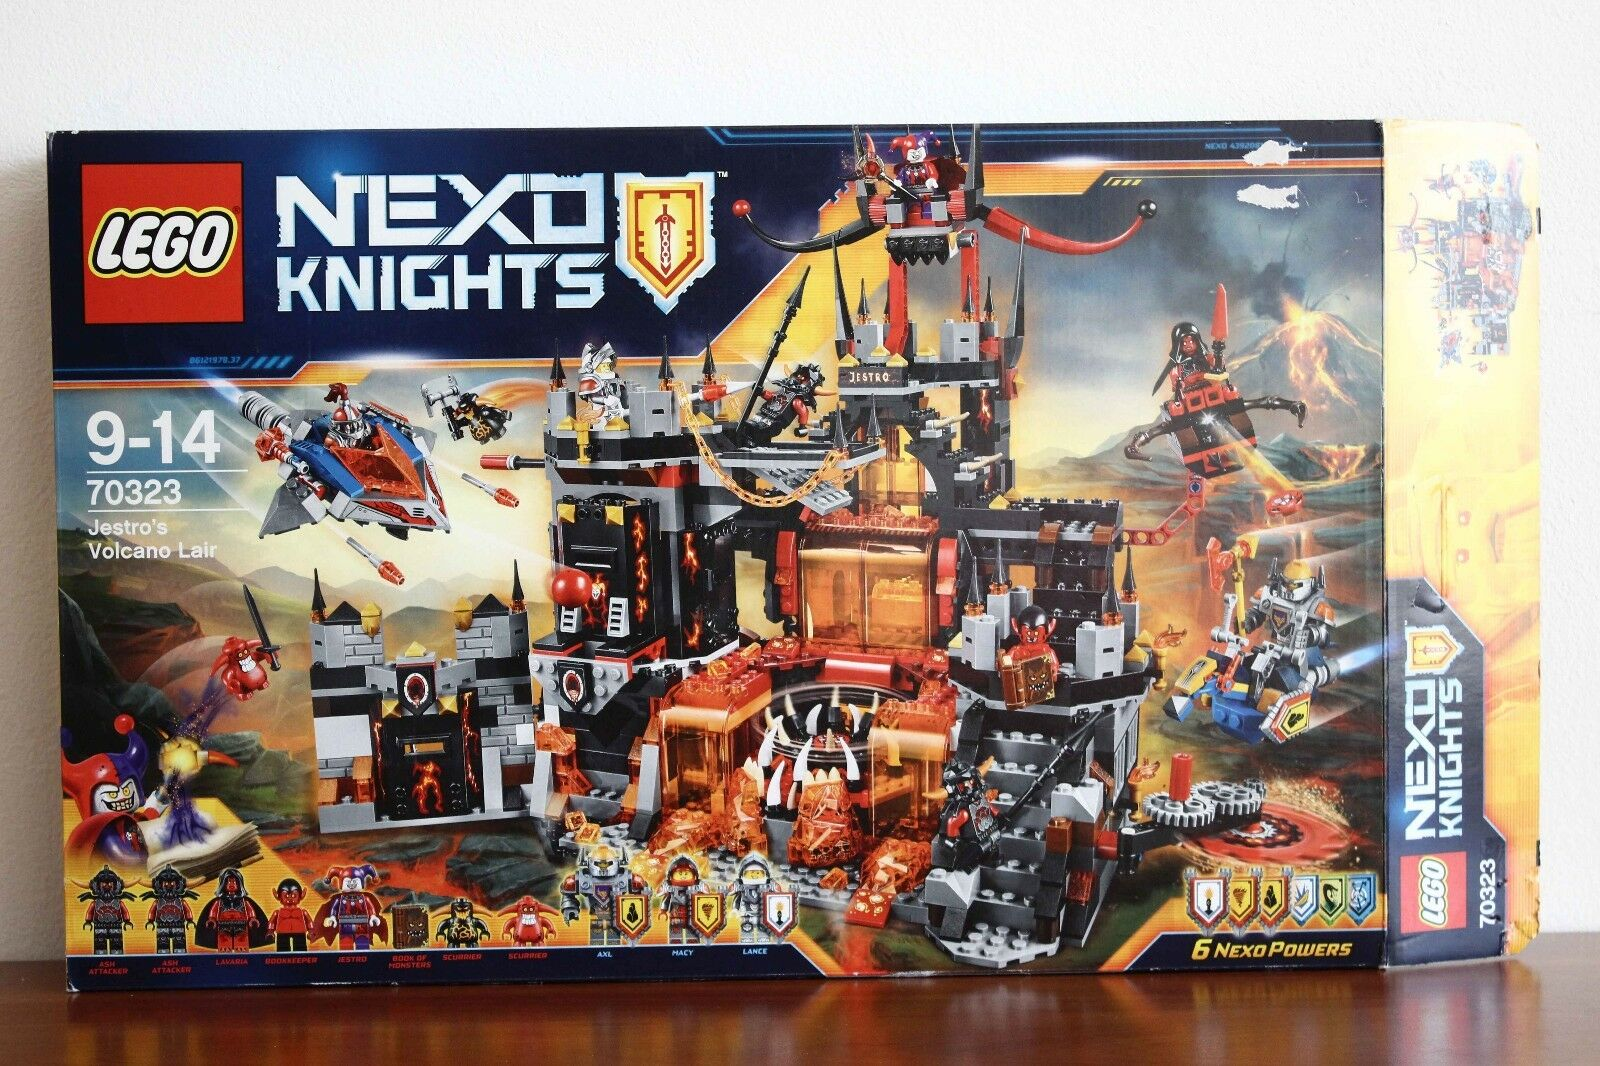 Lego Nexo Knights Set 70323-1 Jestro's Volcano Lair 100% cmpl + instr. and box